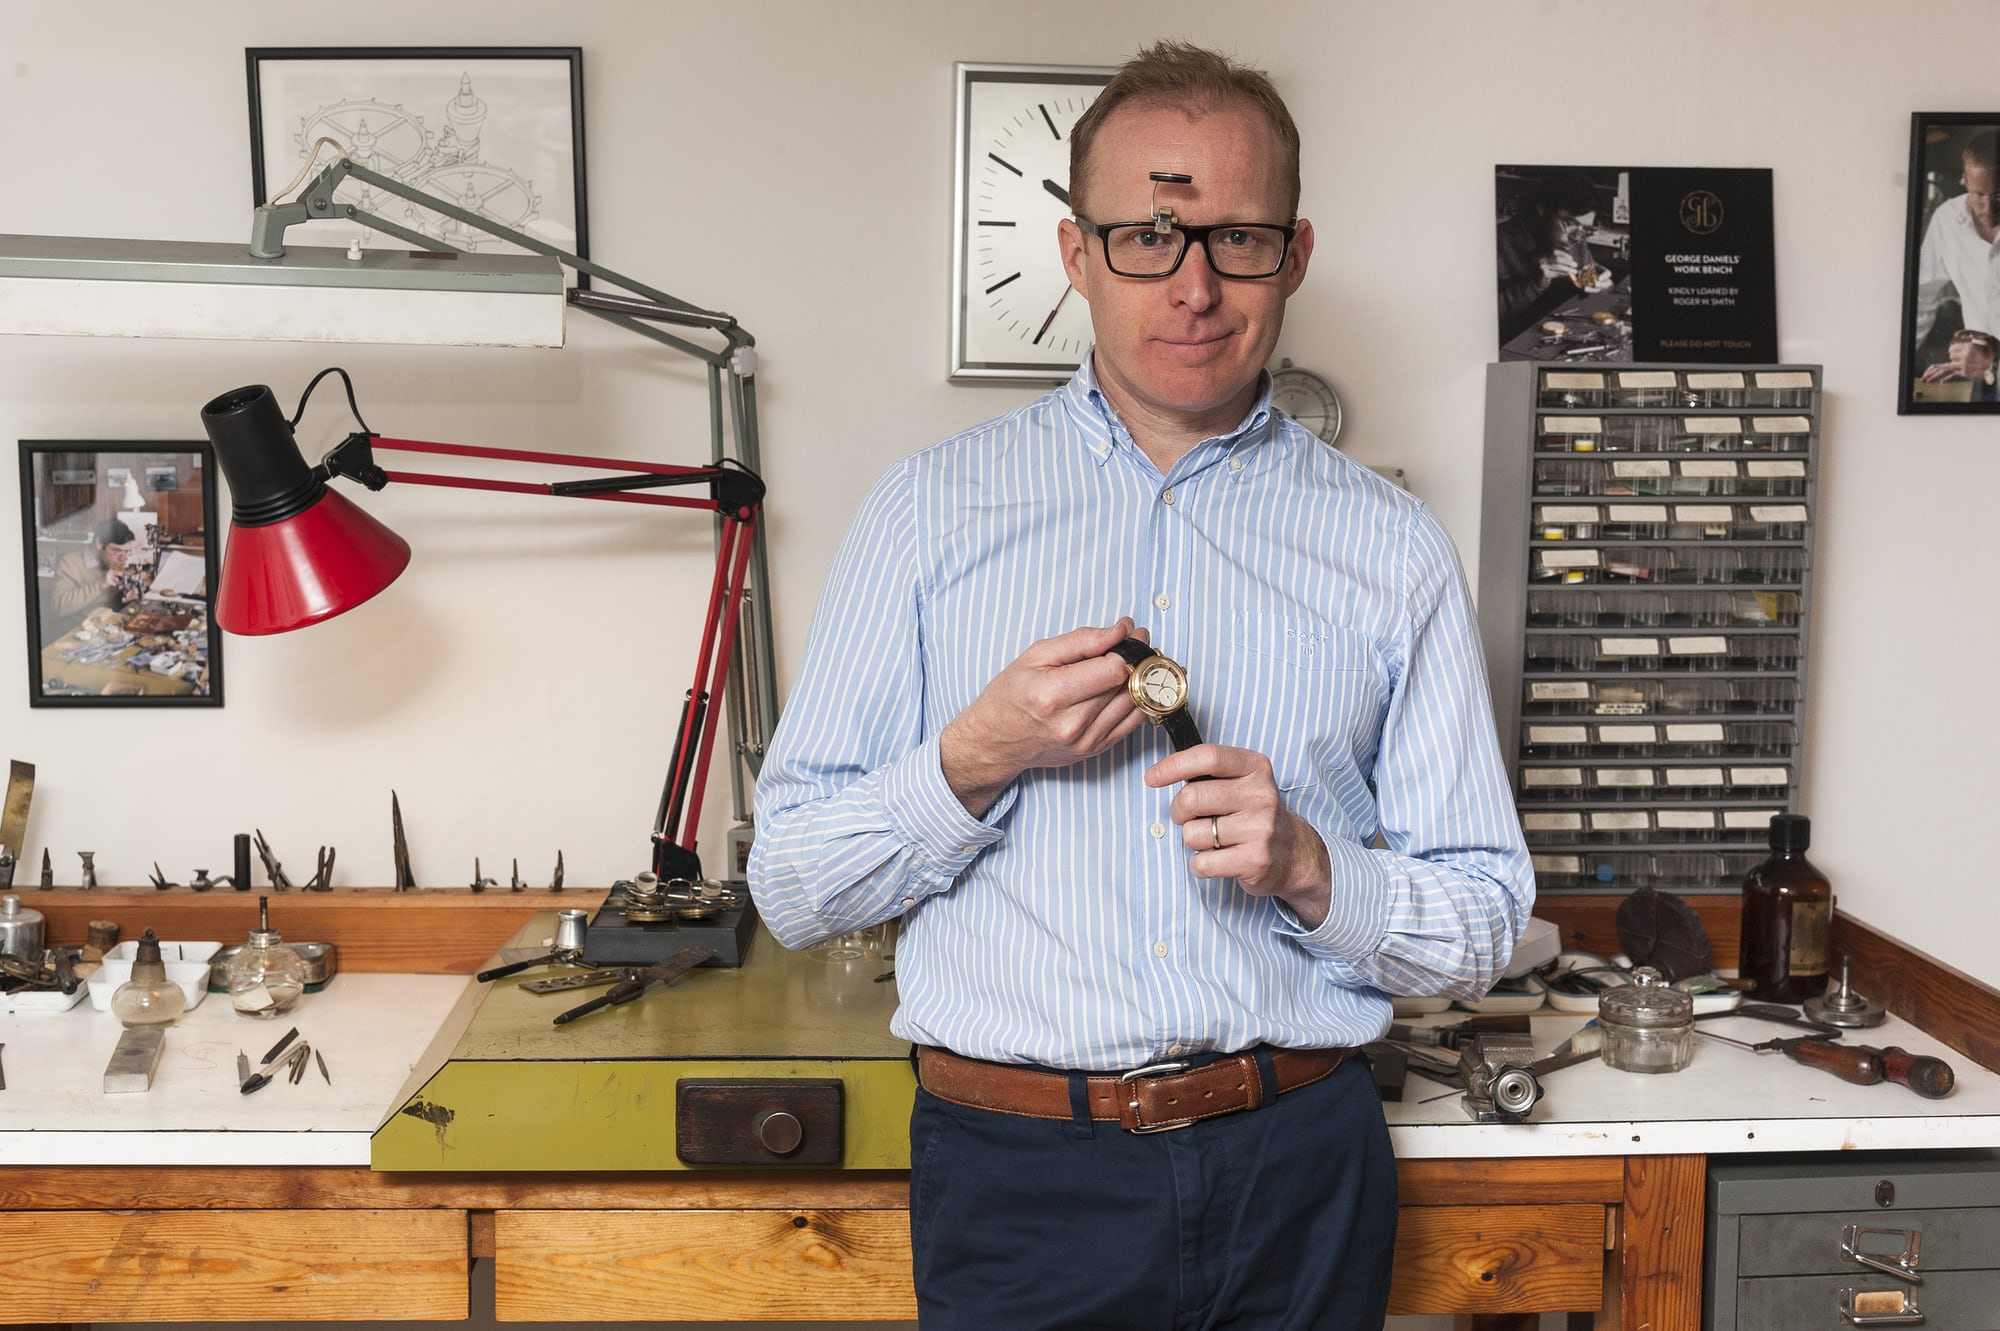 Roger W. Smith Happenings: Roger W. Smith To Lecture At The Horological Society Of New York (And Teach An Exclusive Class Too) Happenings: Roger W. Smith To Lecture At The Horological Society Of New York (And Teach An Exclusive Class Too) RogeratGeorgeDanielsBench Feb2017